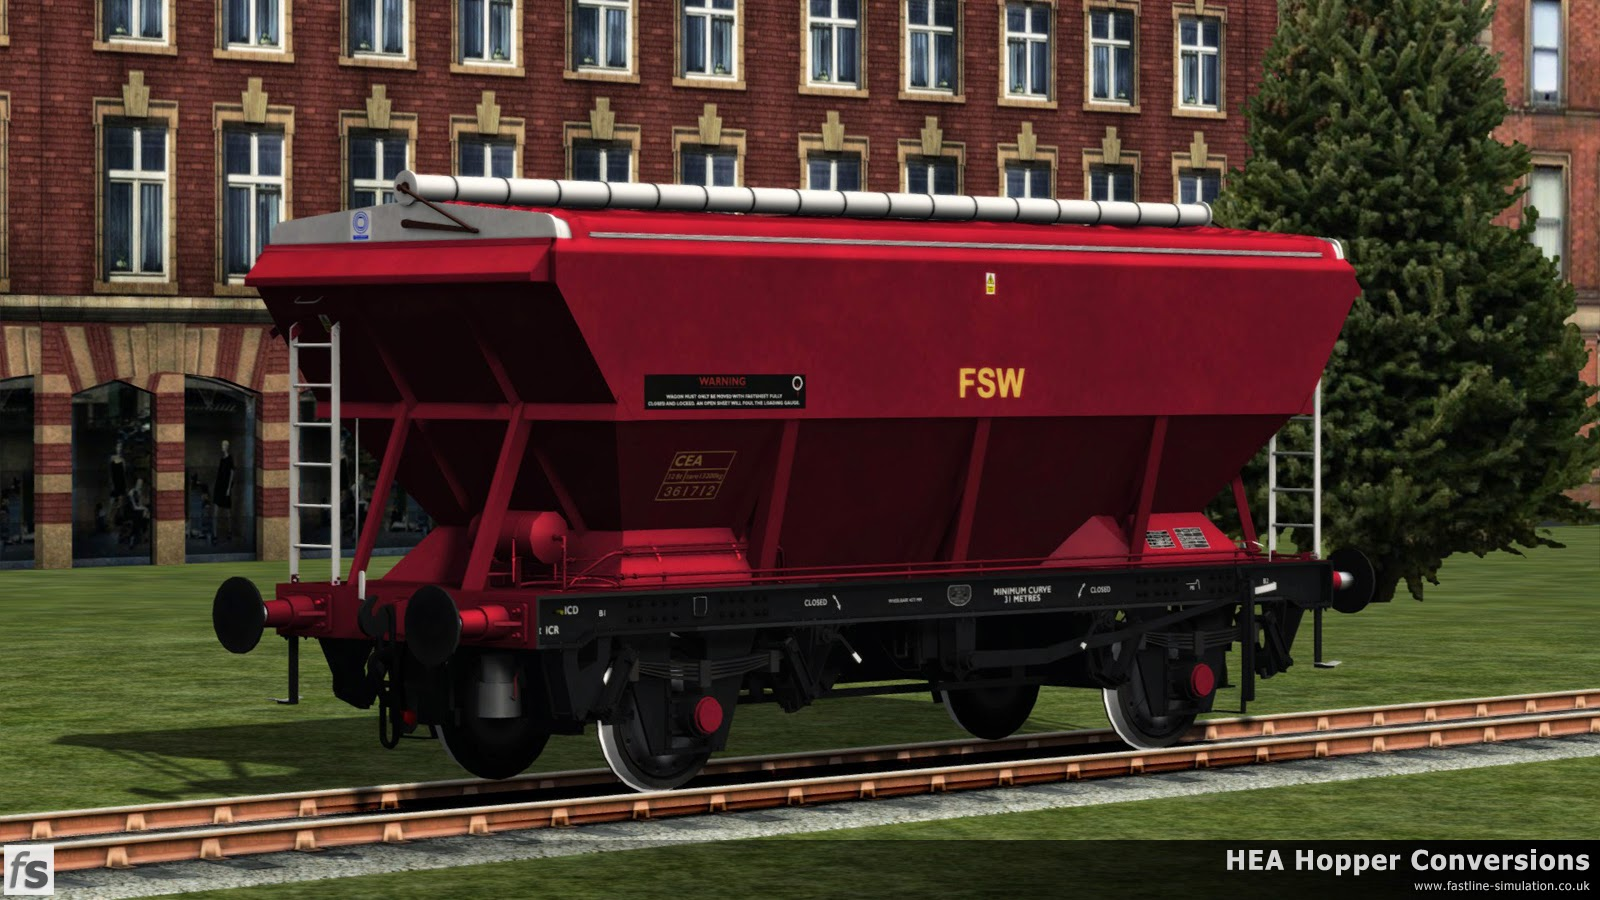 Fastline Simulation - HEA Conversions: A few CEA hoppers did manage to gain a coat of full red and gold livery complete with branding. The wagon also carries a more recent warning notice about the covers which appears on some hoppers.